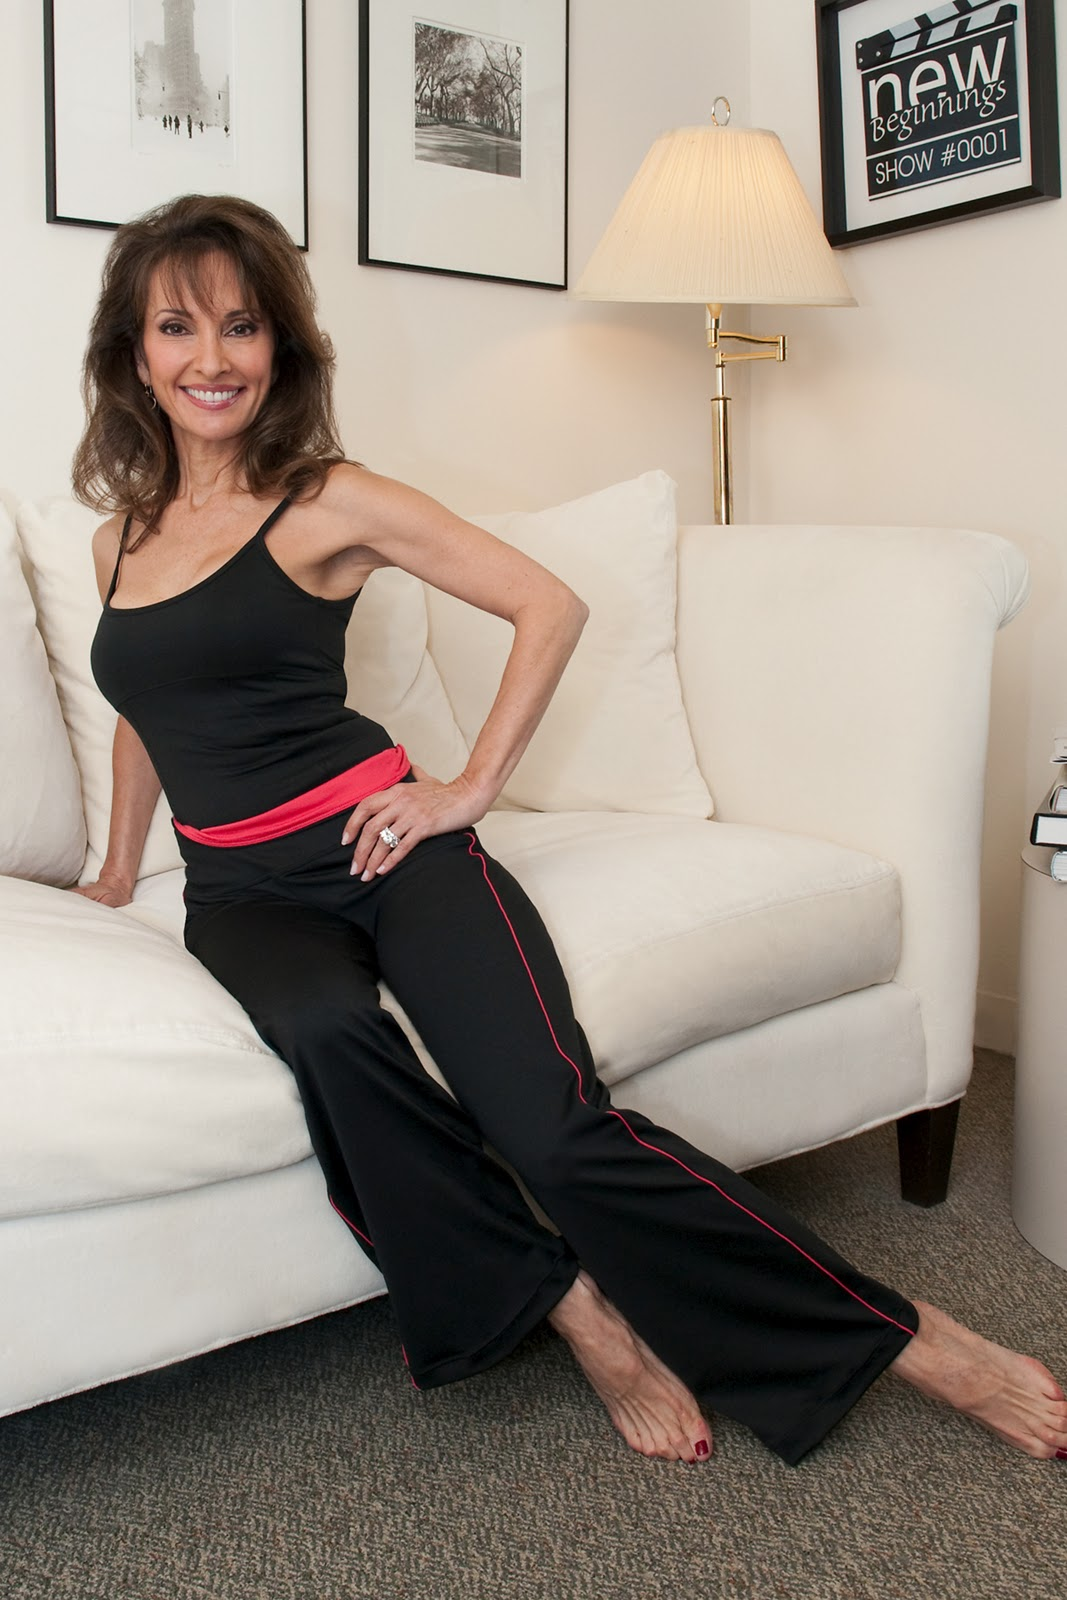 Lucci Was Born On December 23 1946 In Scarsdale New York Susan Lucci